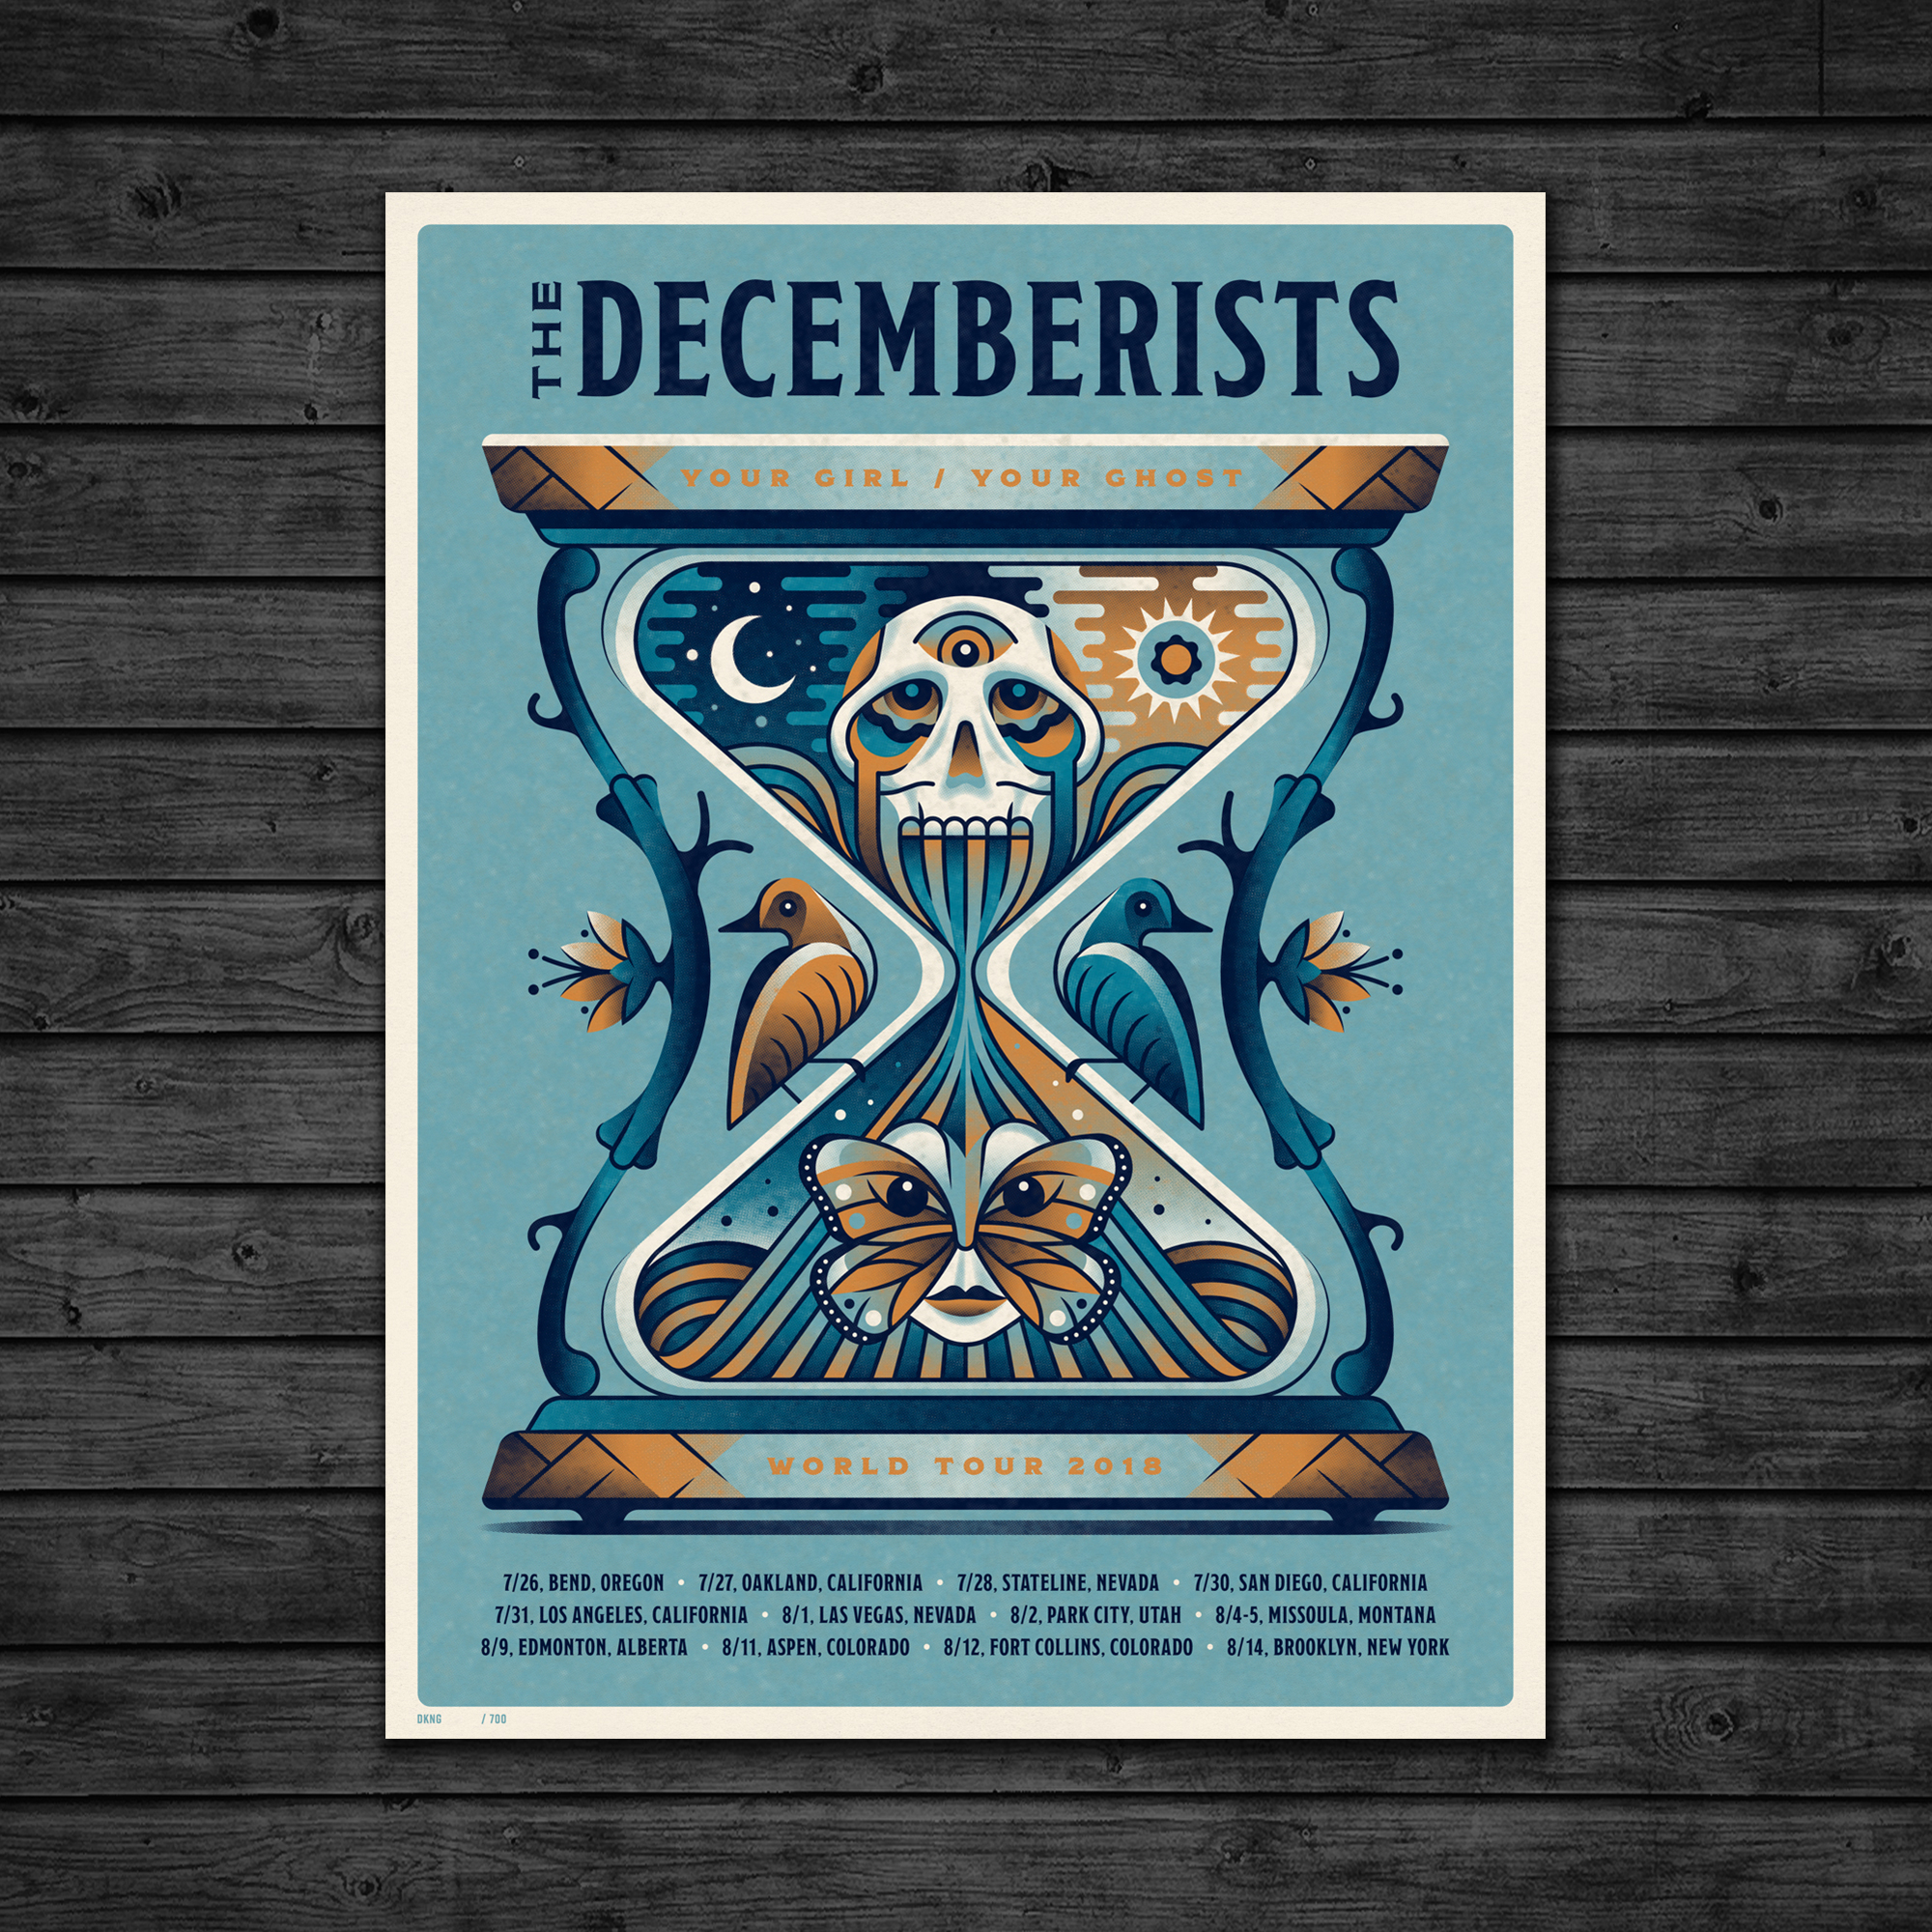 The Decemberists 2018 Tour (VIP Leg 2) — DKNG